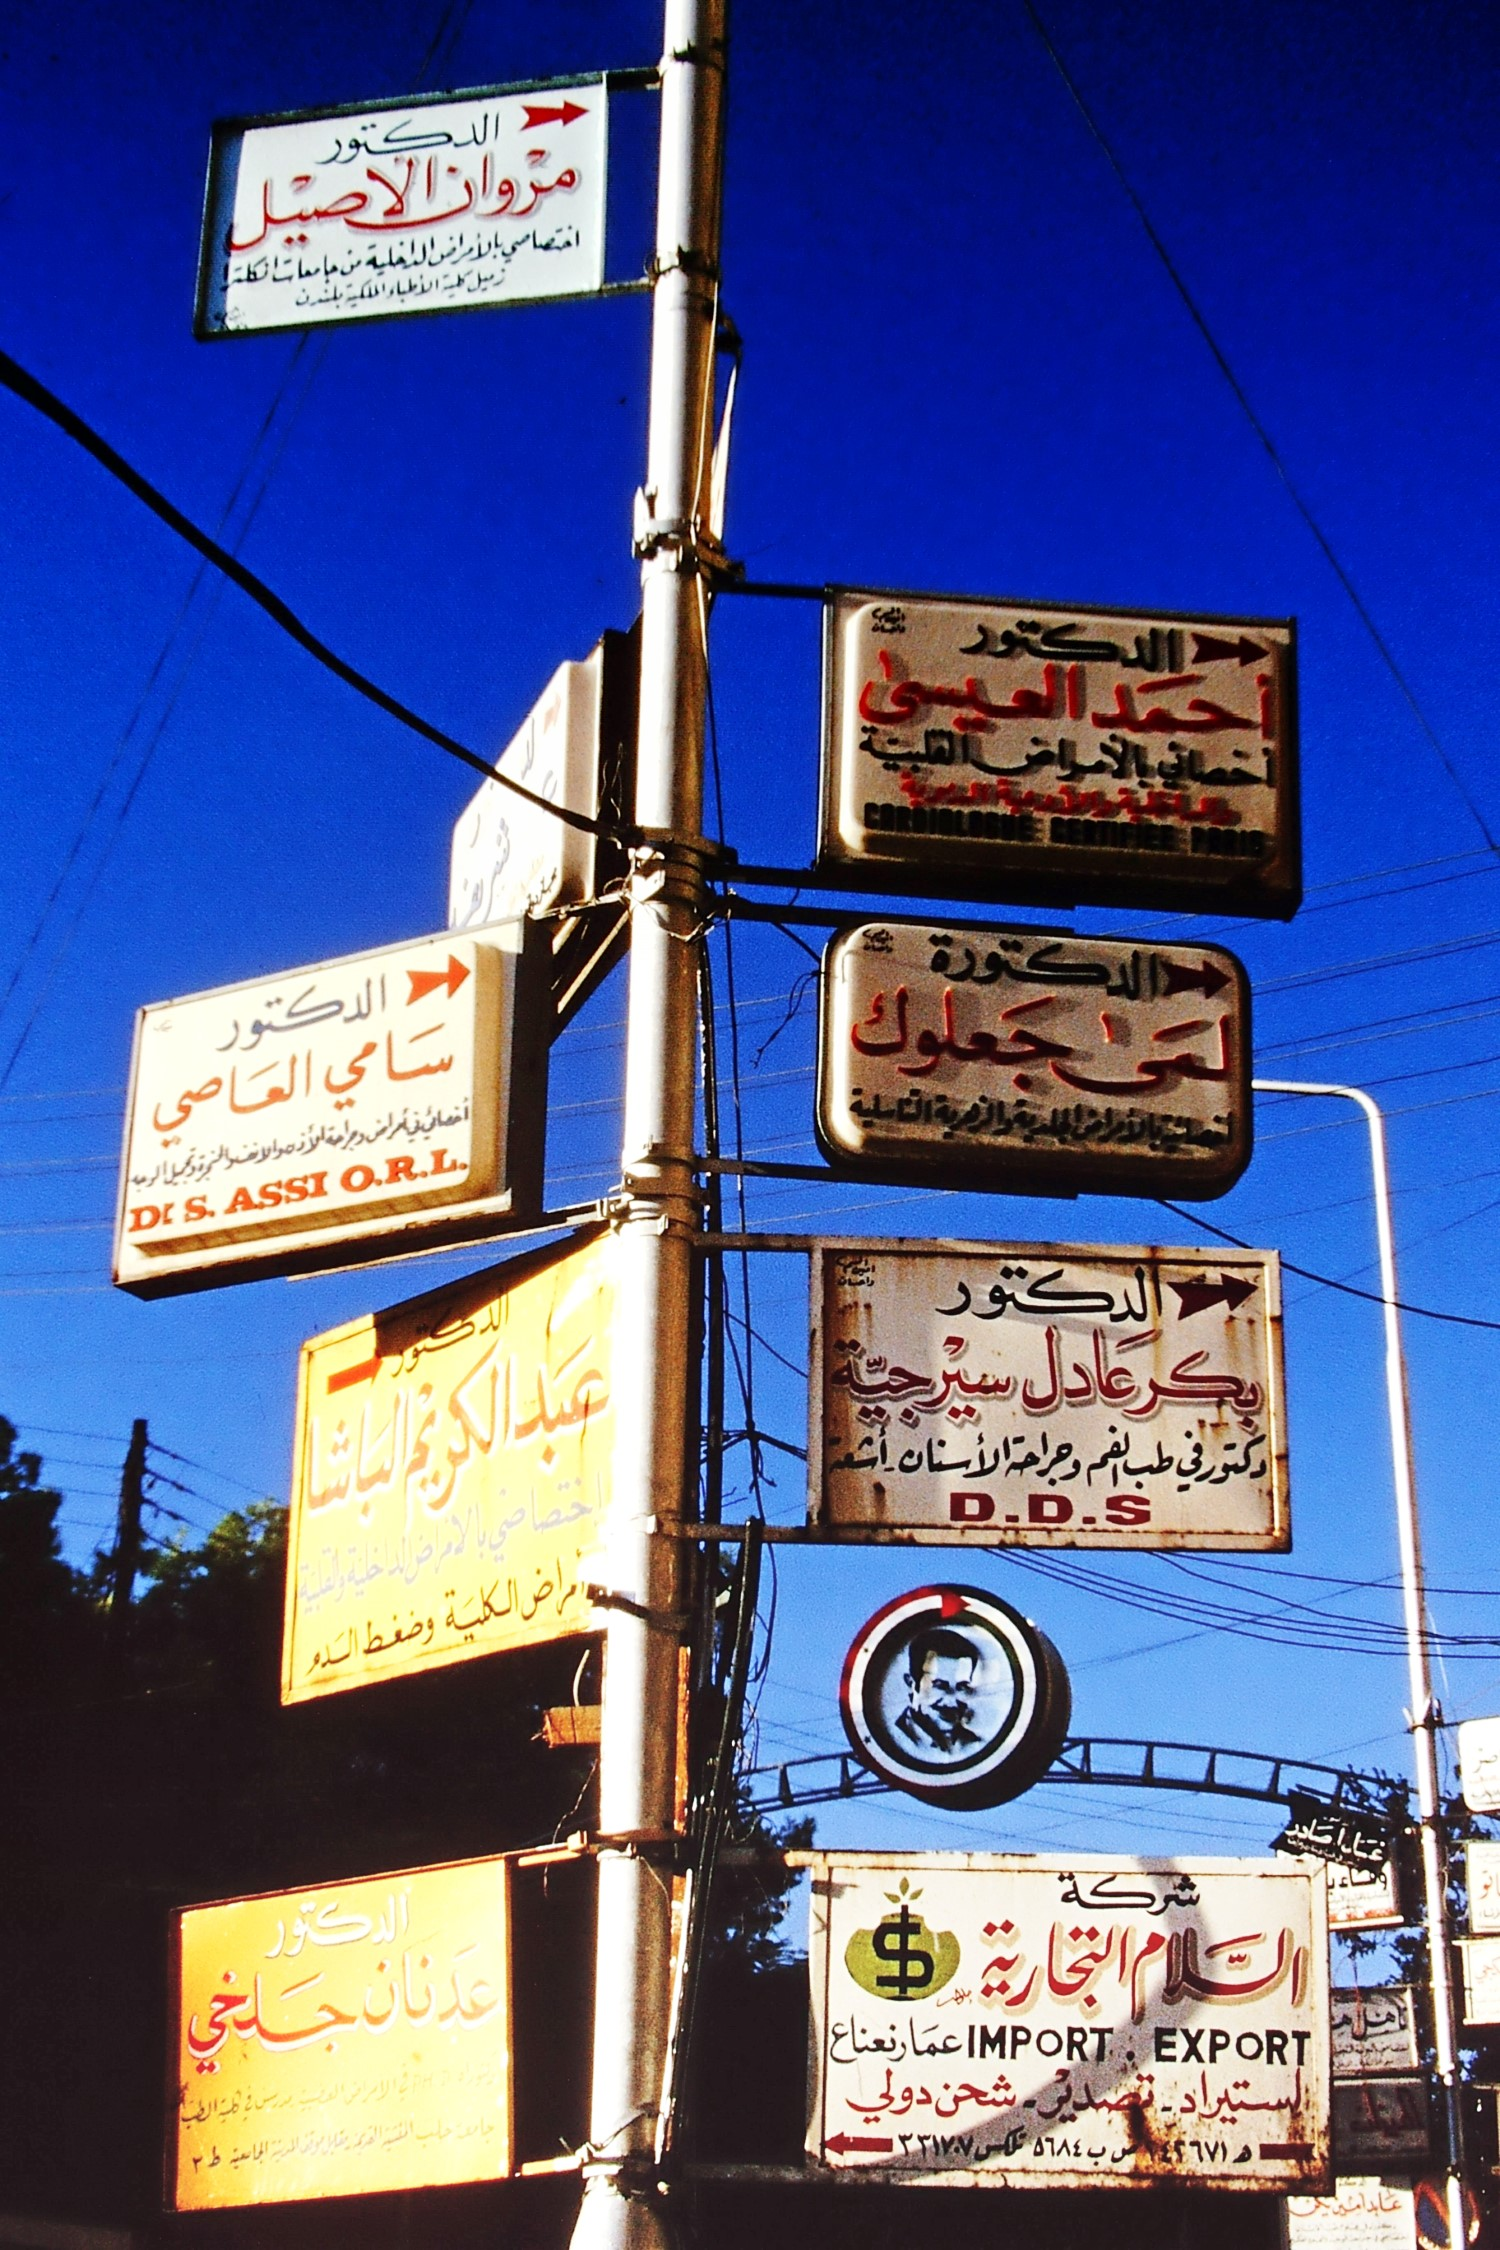 Signs in Arabic on a lamppost